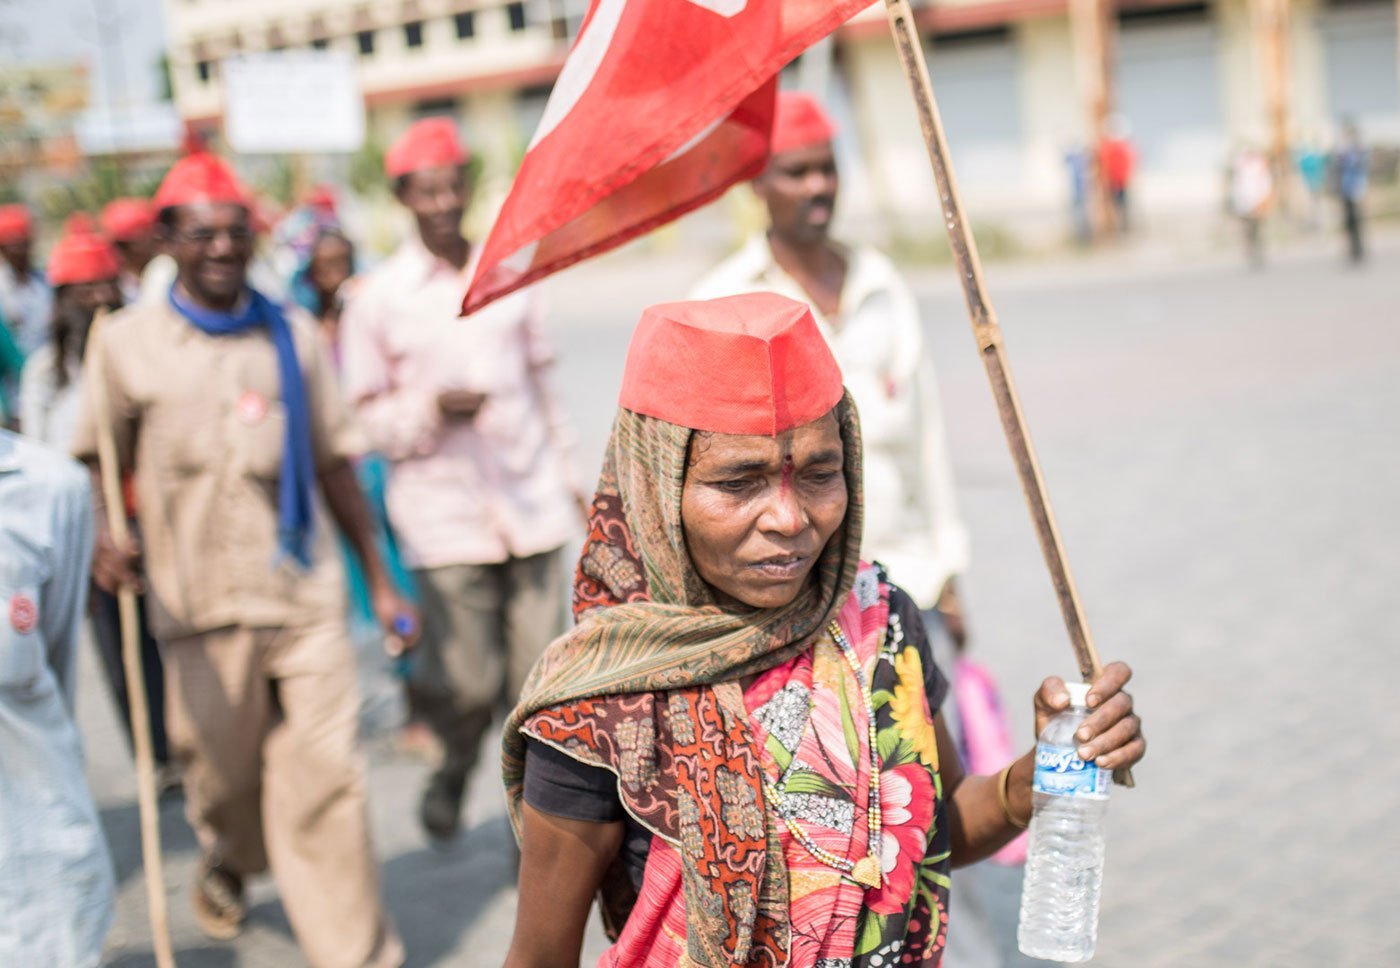 A woman marching alongside others, holding a red flag and a plastic bottle in her hand